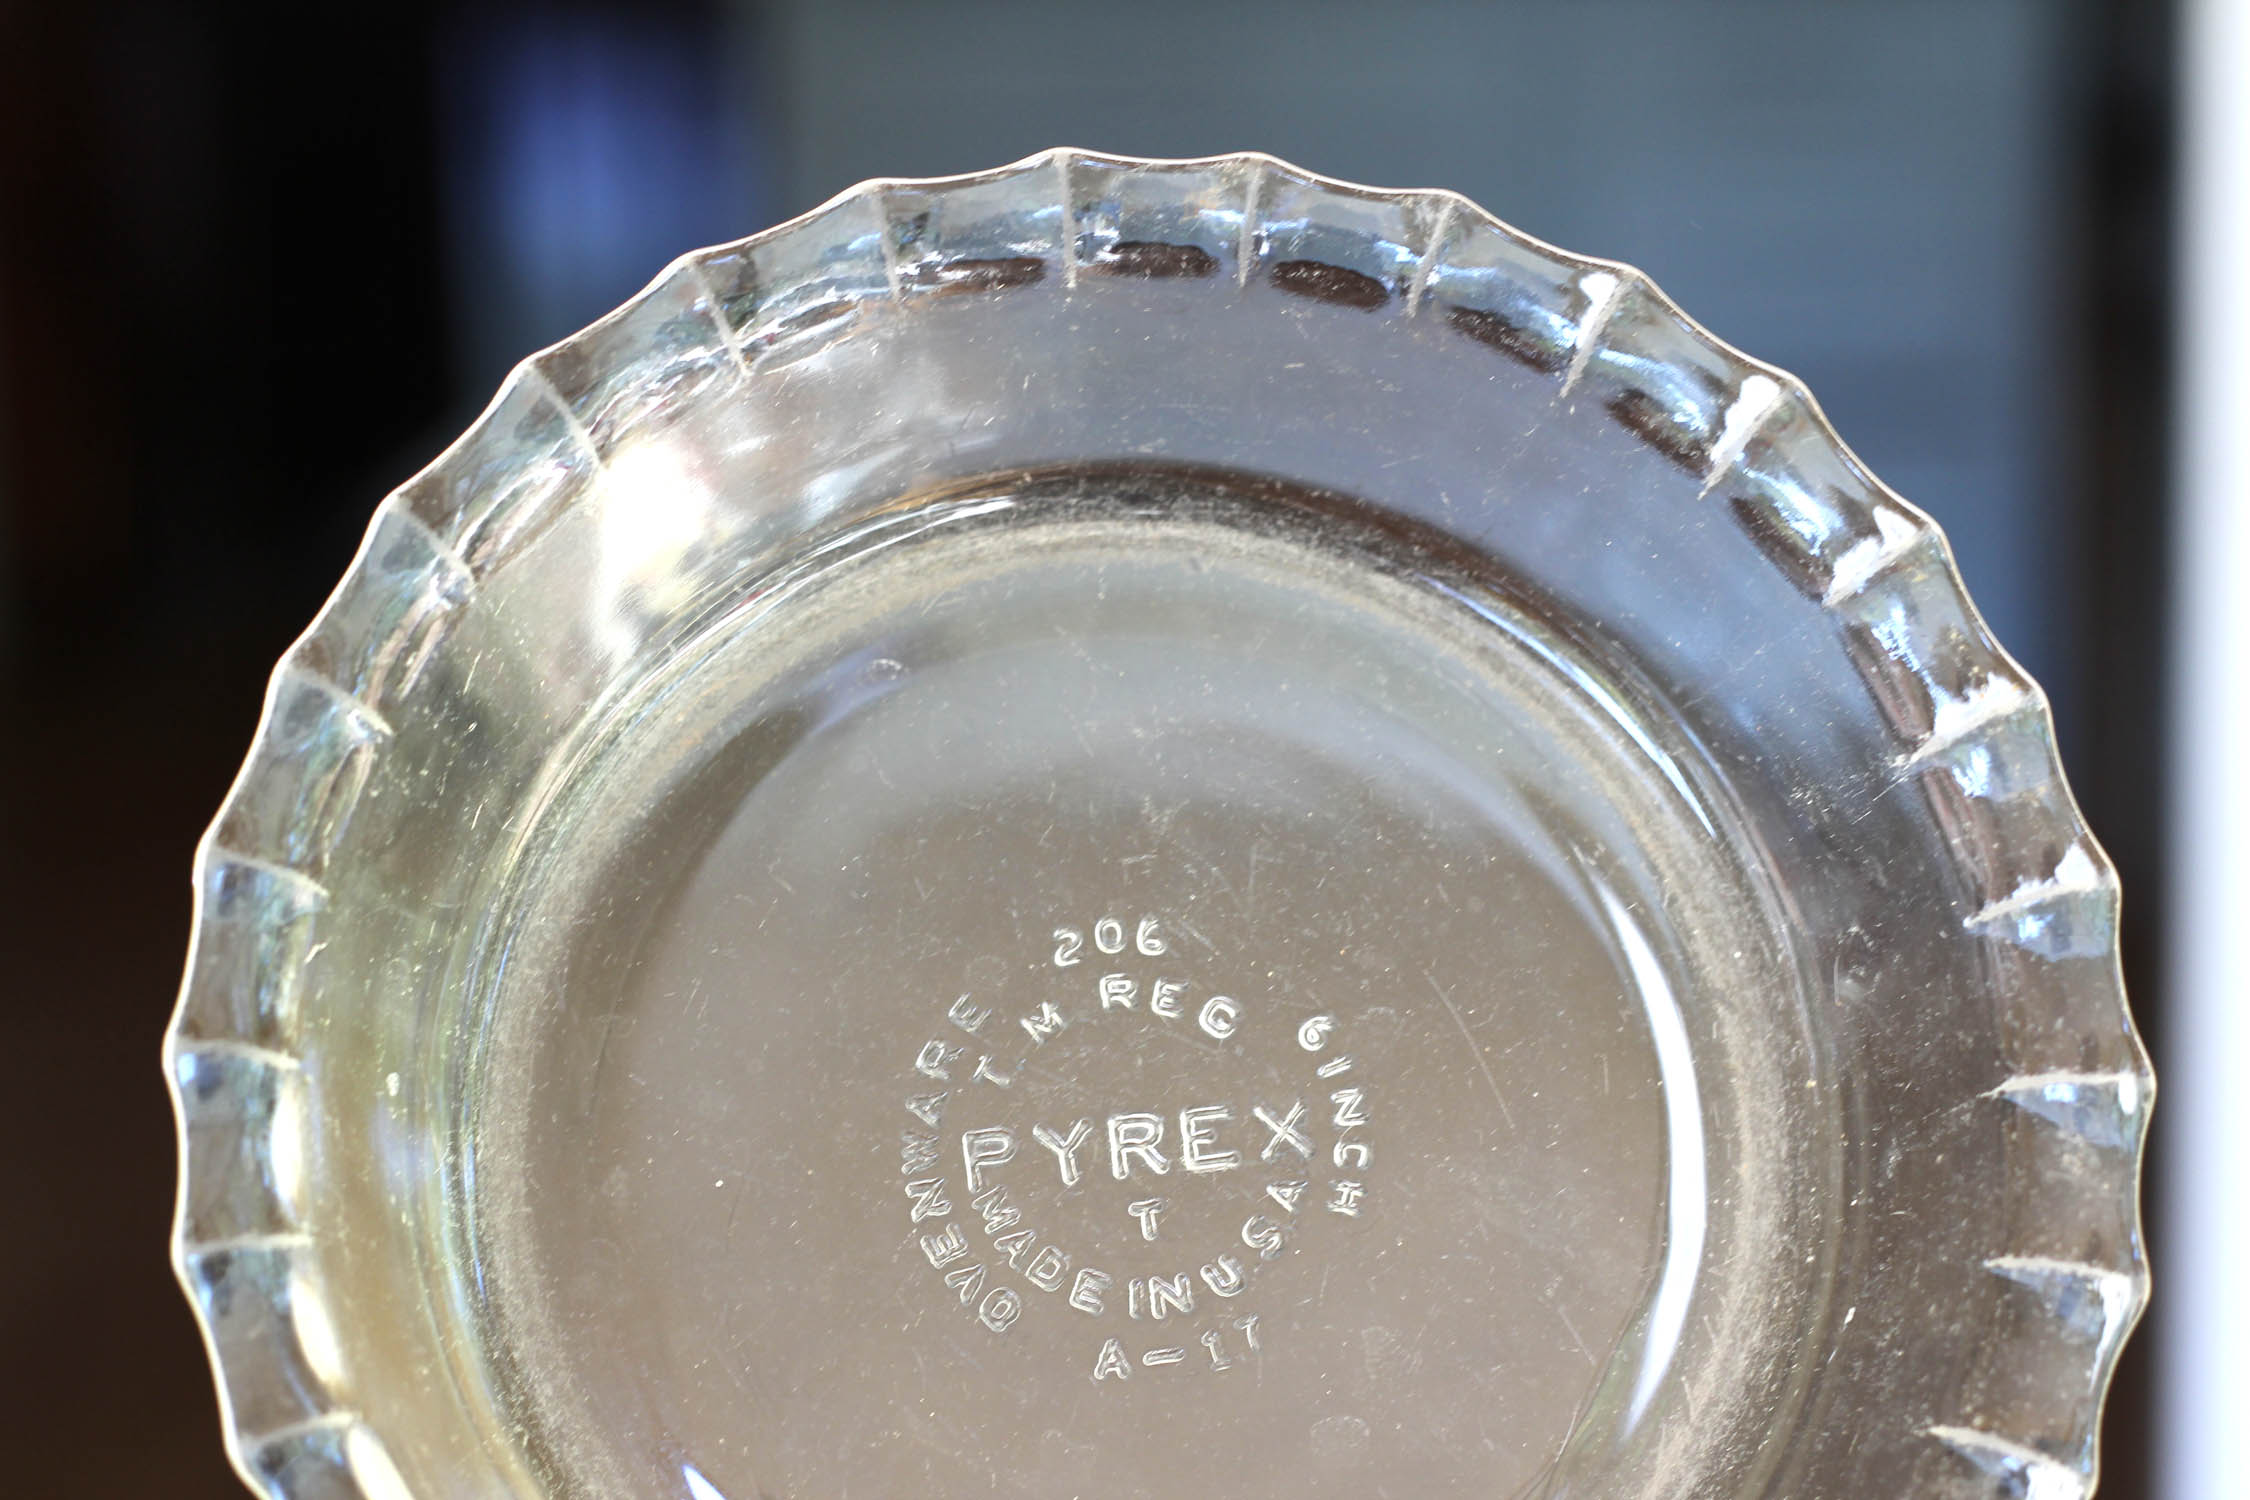 Pyrex 6 Inch Pie Plate & Marvelous Pyrex 6 Inch Pie Plate Images - Best Image Engine ...